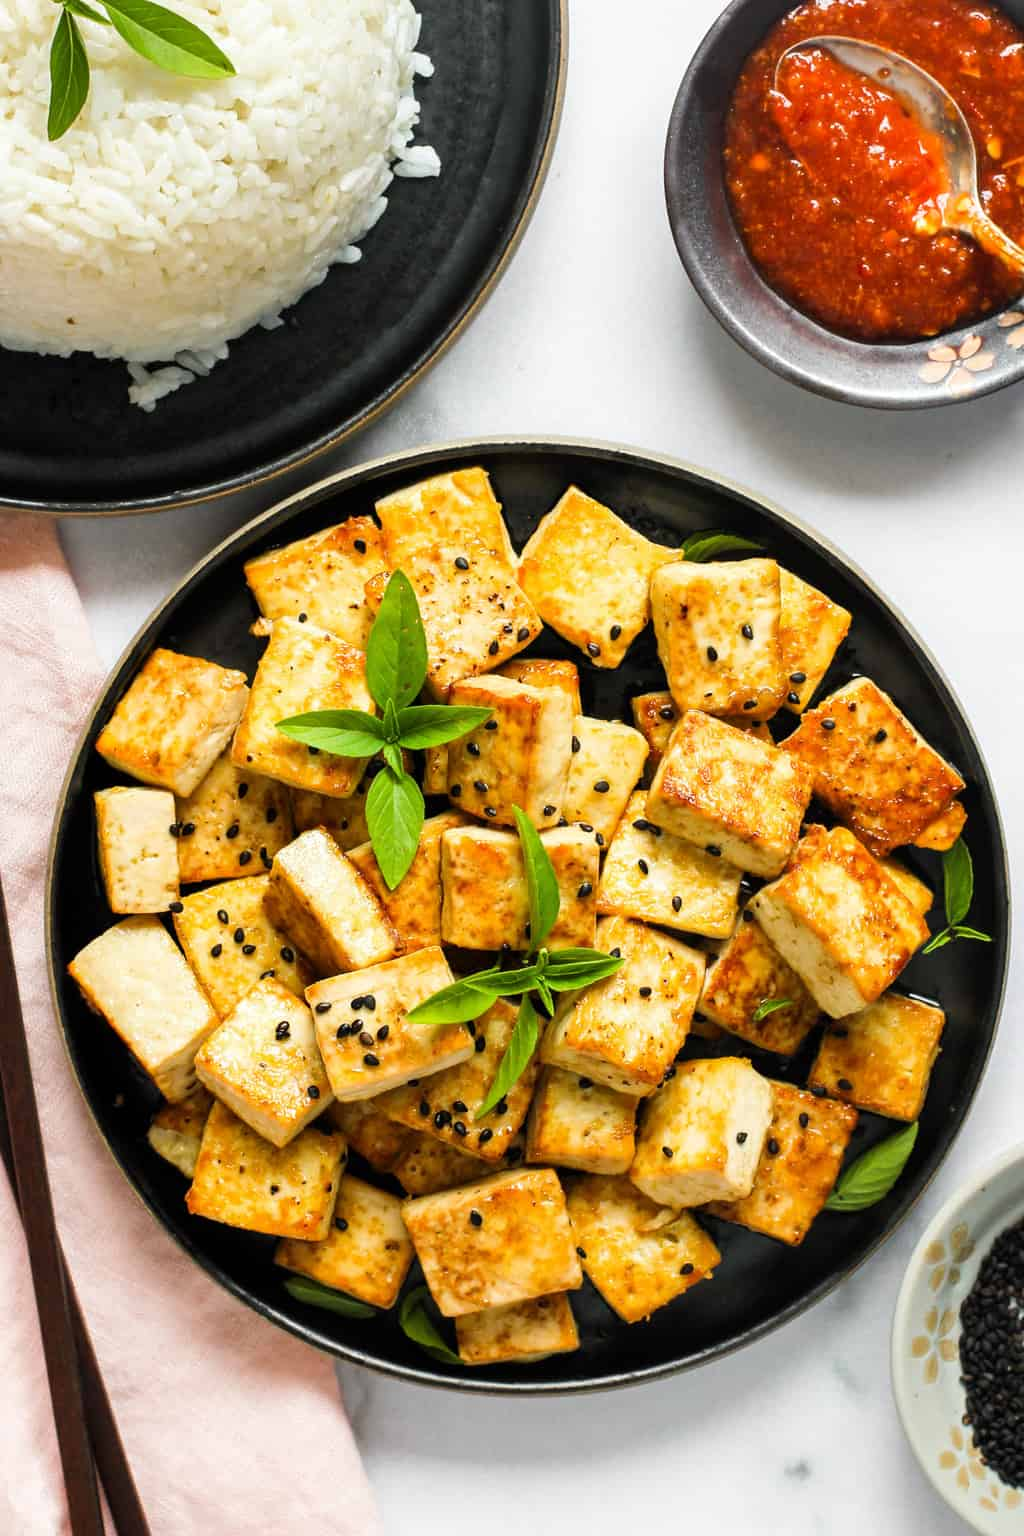 Tofu served with rice and hot sauce